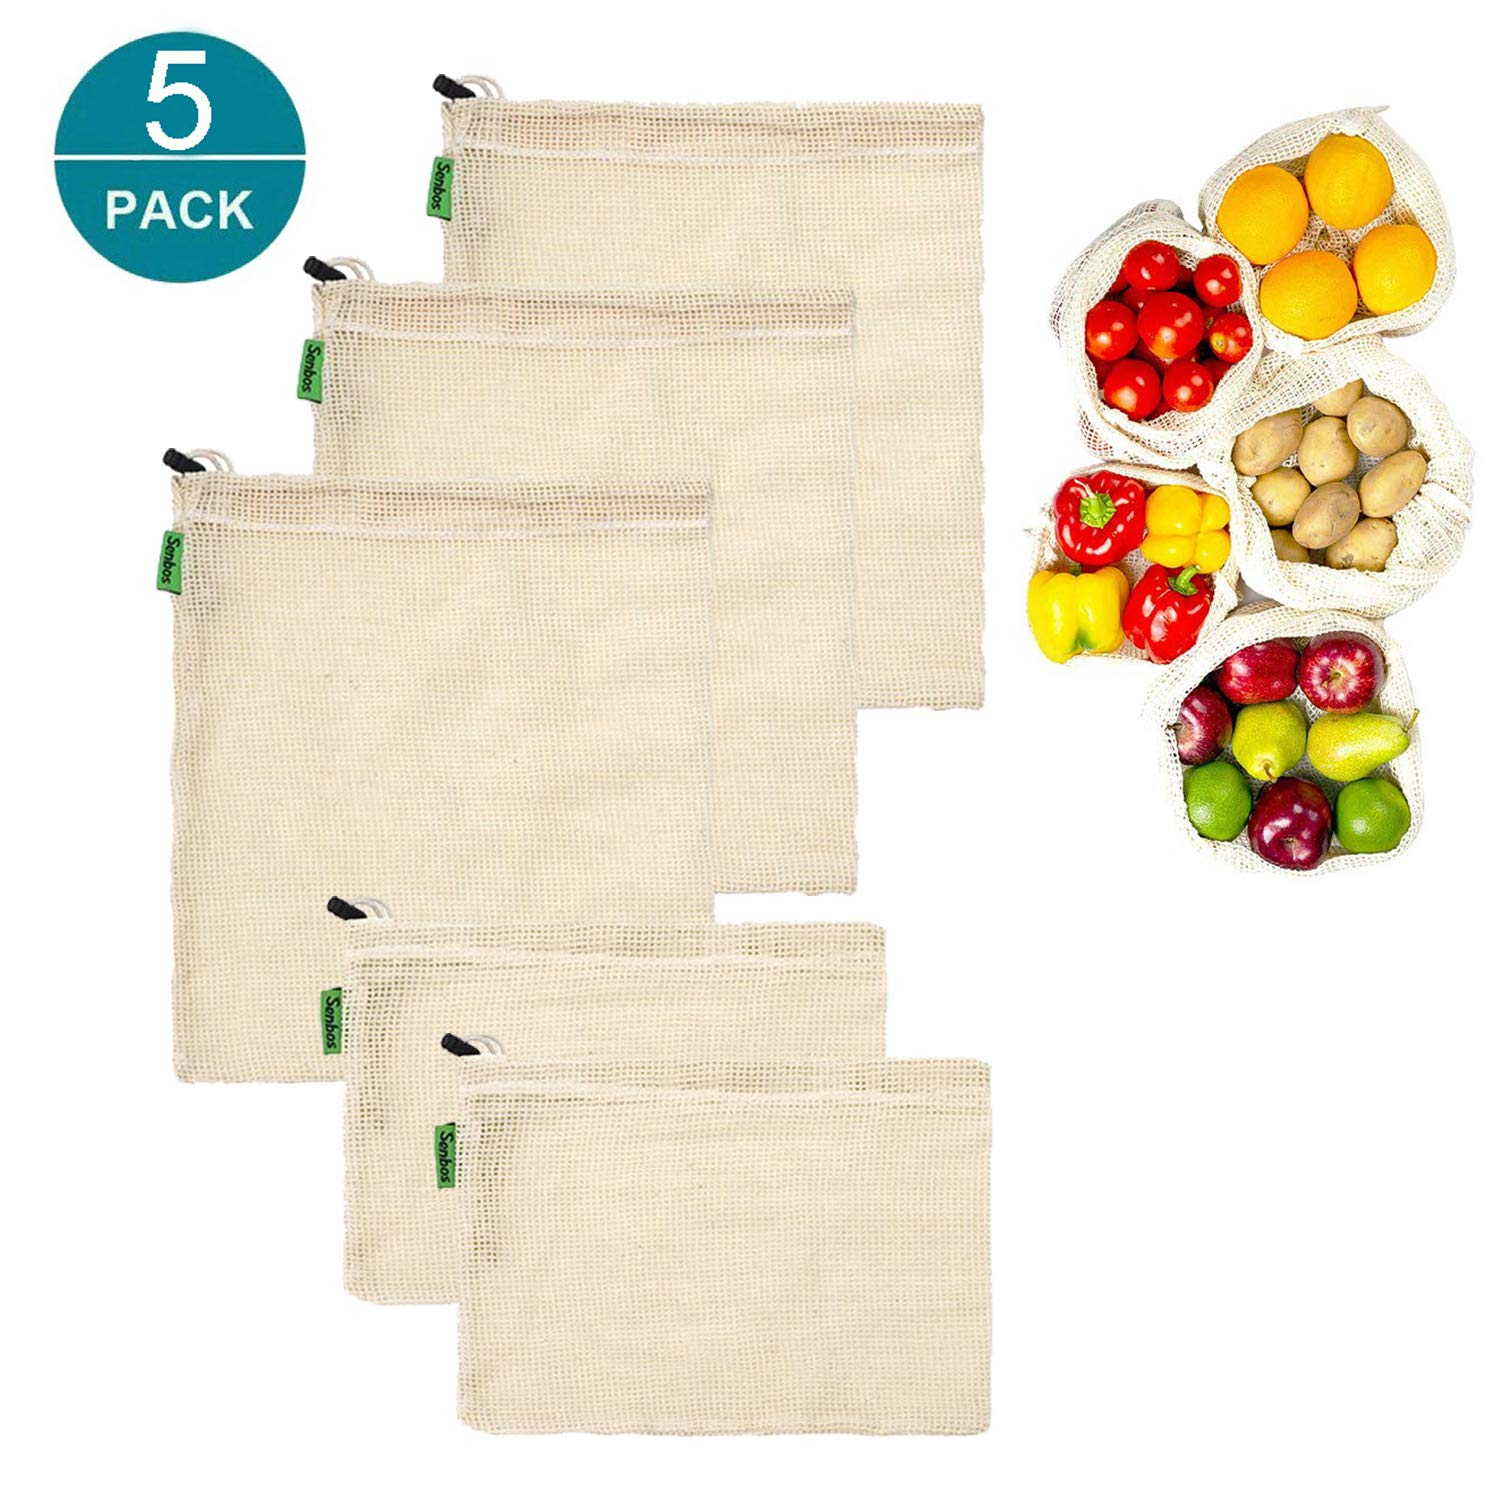 Reusable Produce Bags, Set of 5 Mesh Produce Bags Lightweight Drawstring Bags Zero-Waste Organic Bag Washable Cotton Bulk Bag For Grocery Shopping Storage Fruits Vegetable Toys (3 Medium, 2 Small)